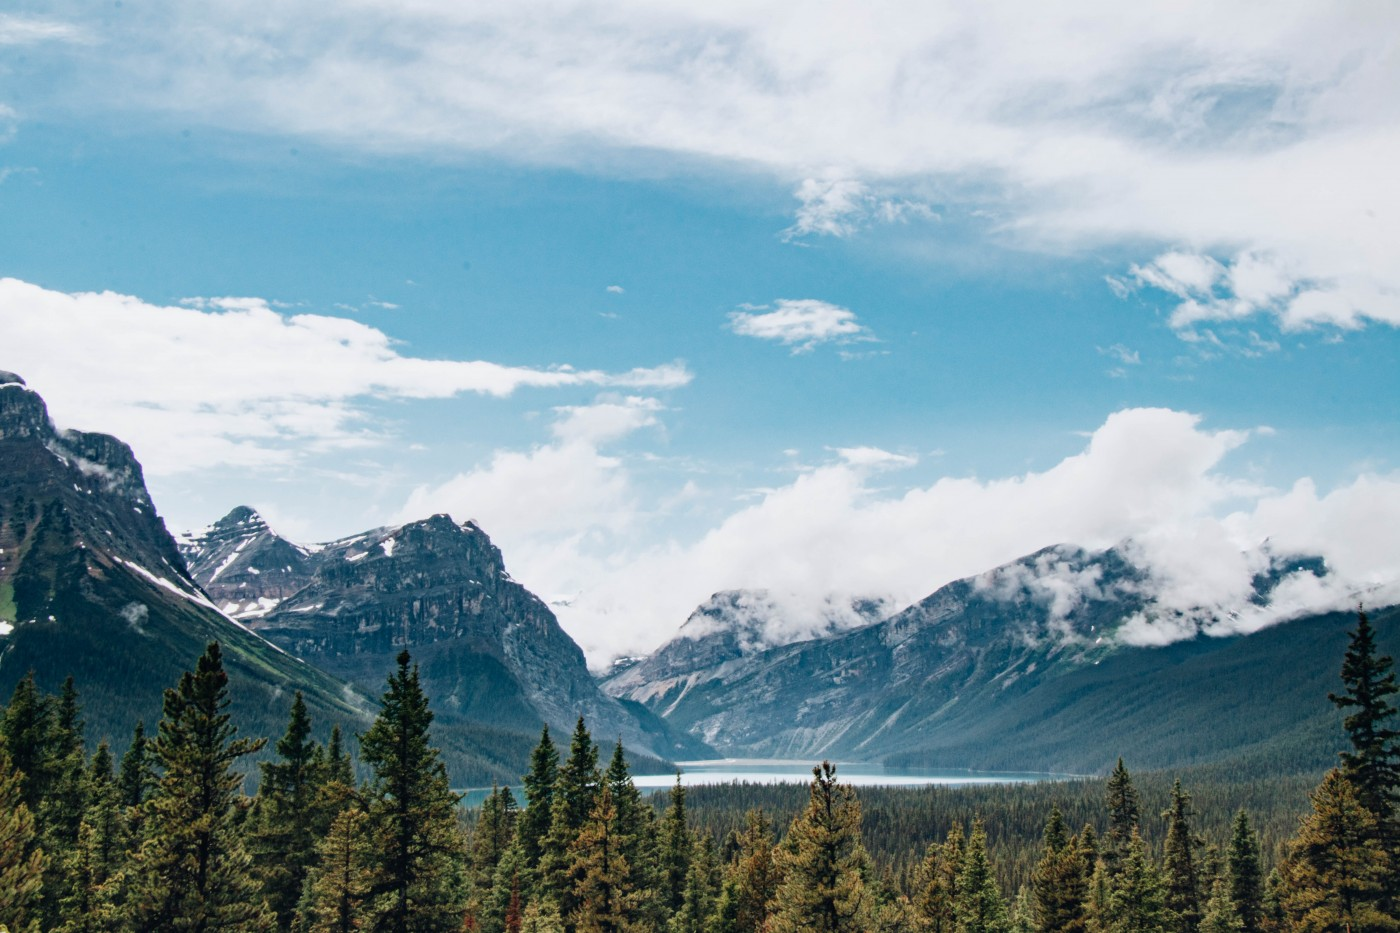 Icefields Parkway | Top 10 Photography Spots in Banff National Park